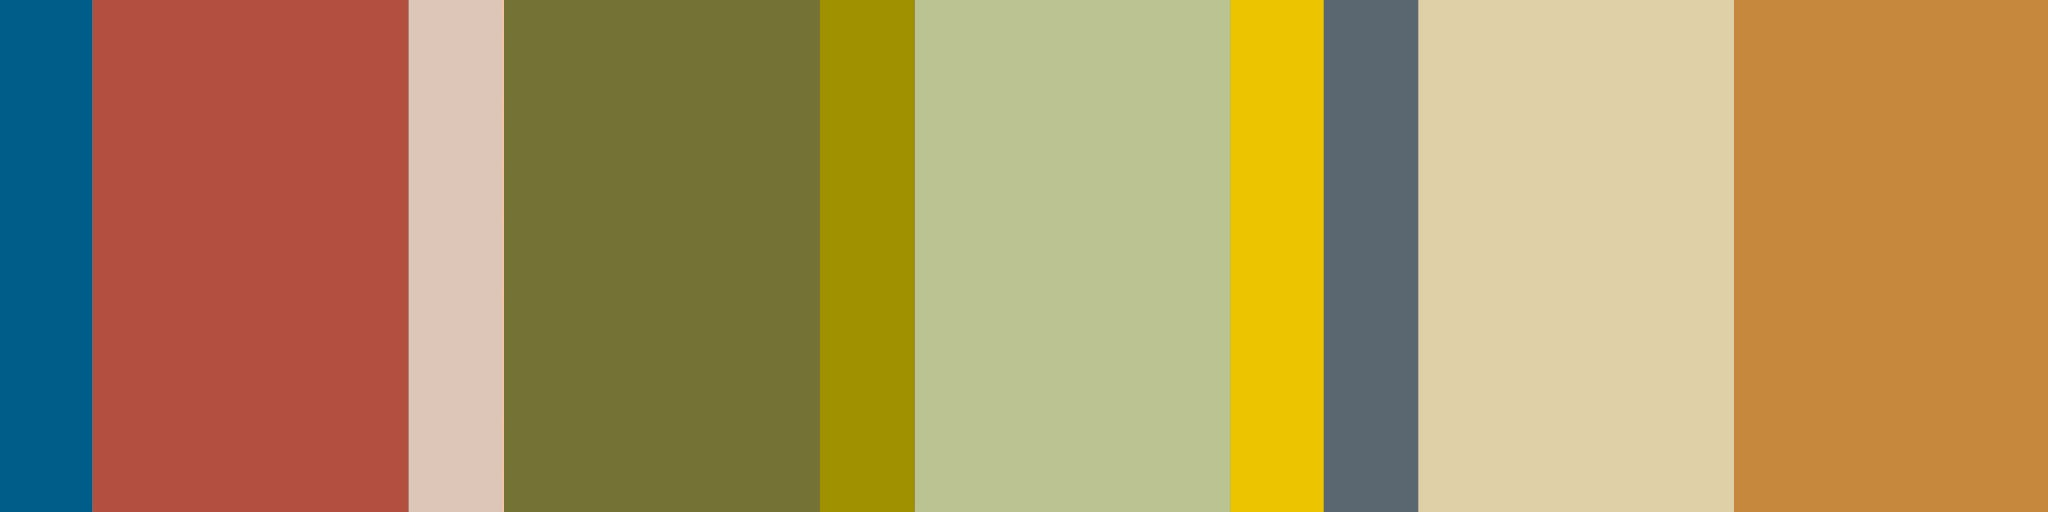 consious-color-scaled